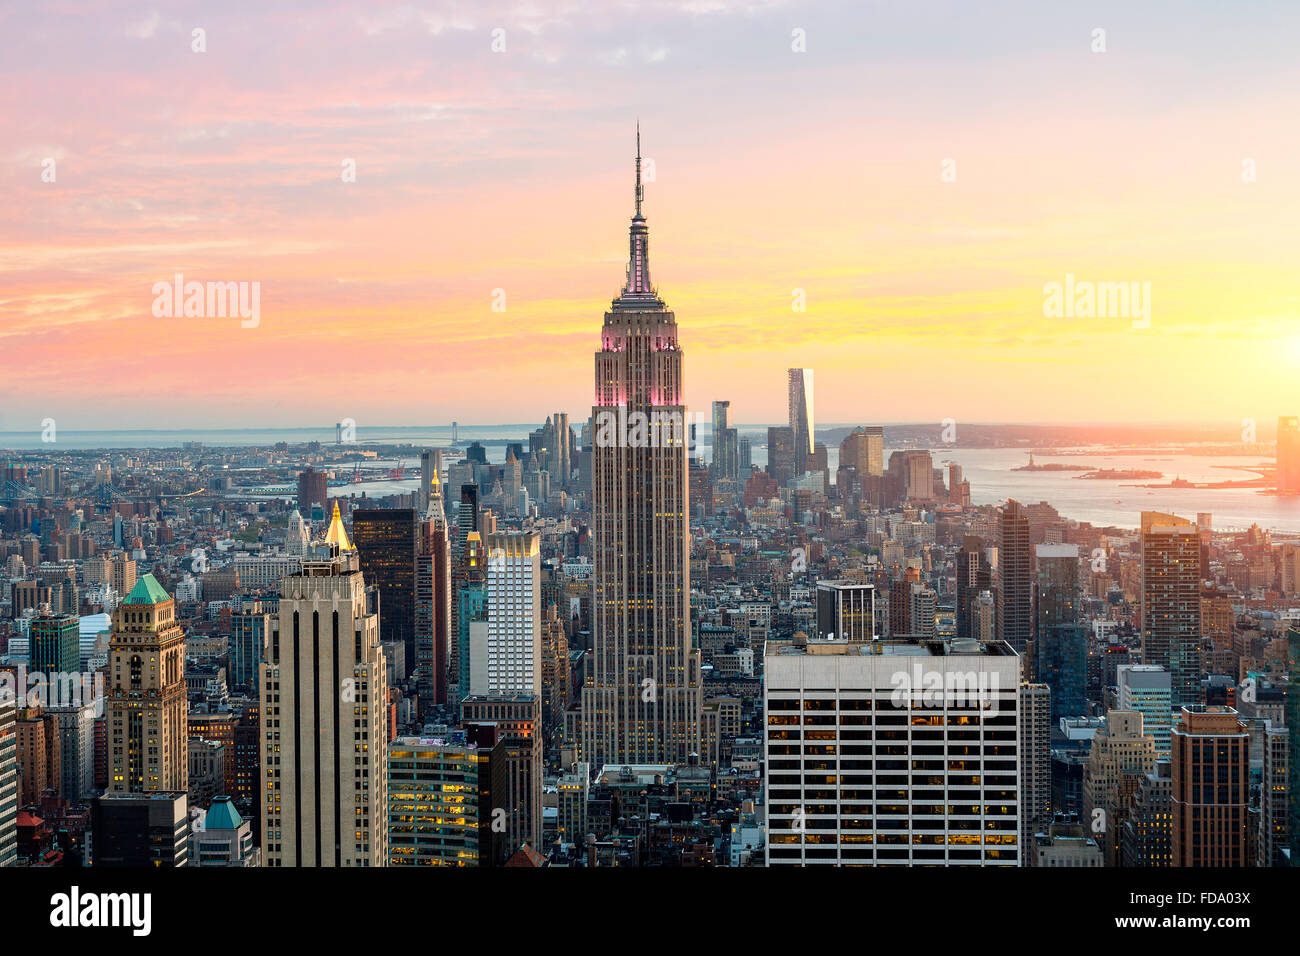 New-York City Skyline with Empire state Building - Stock Image